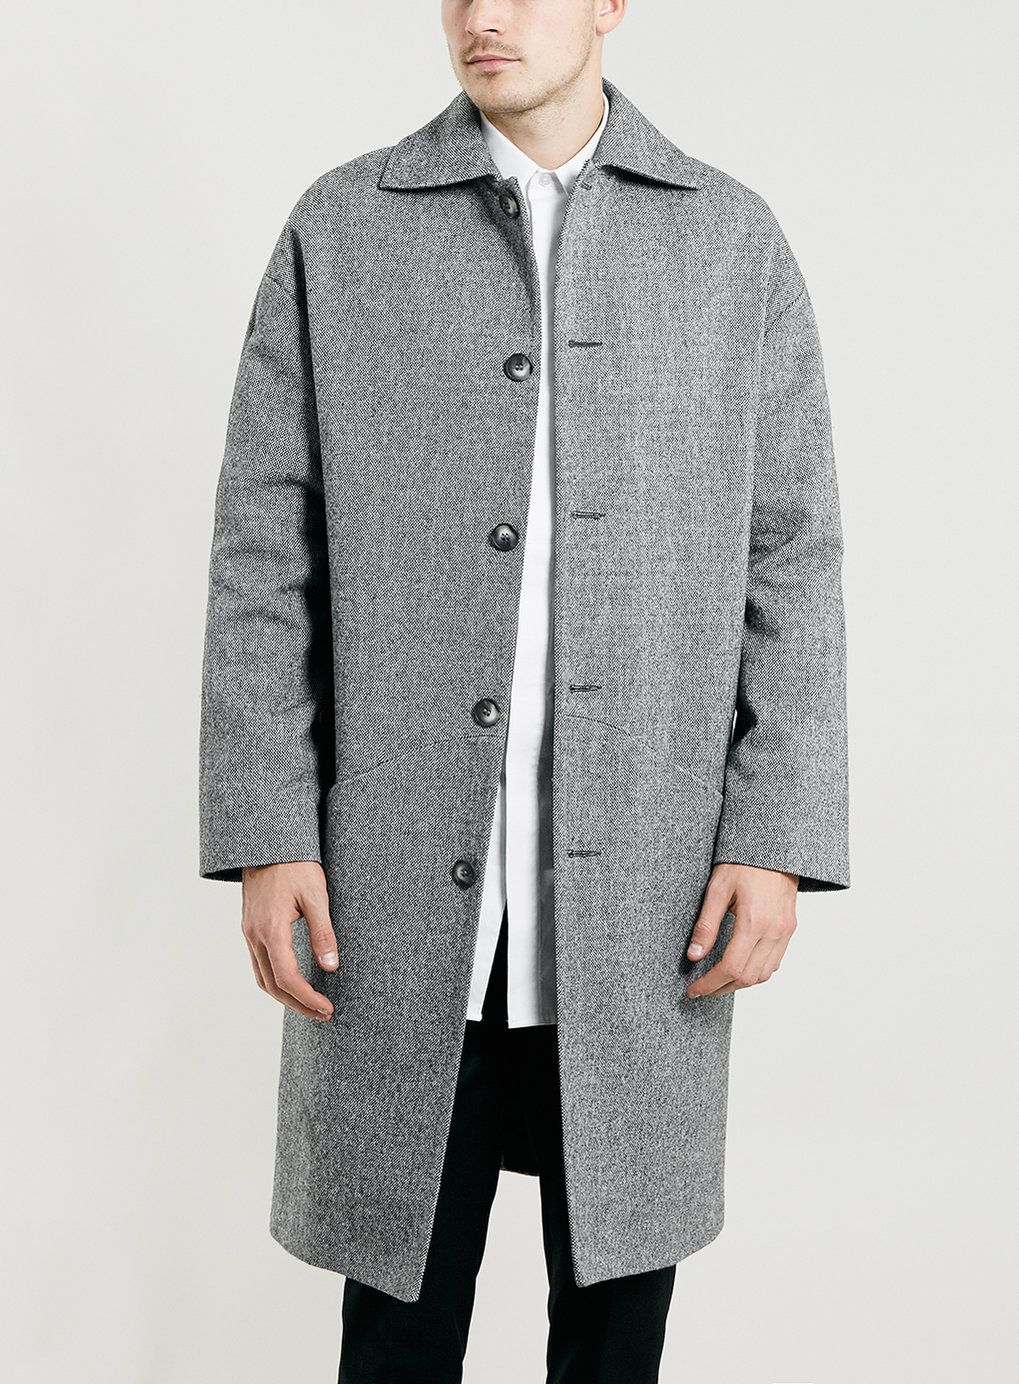 LUX GREY LONG CACOON DONEGAL SB COAT - TOPMAN EUROPE | Clothing ...